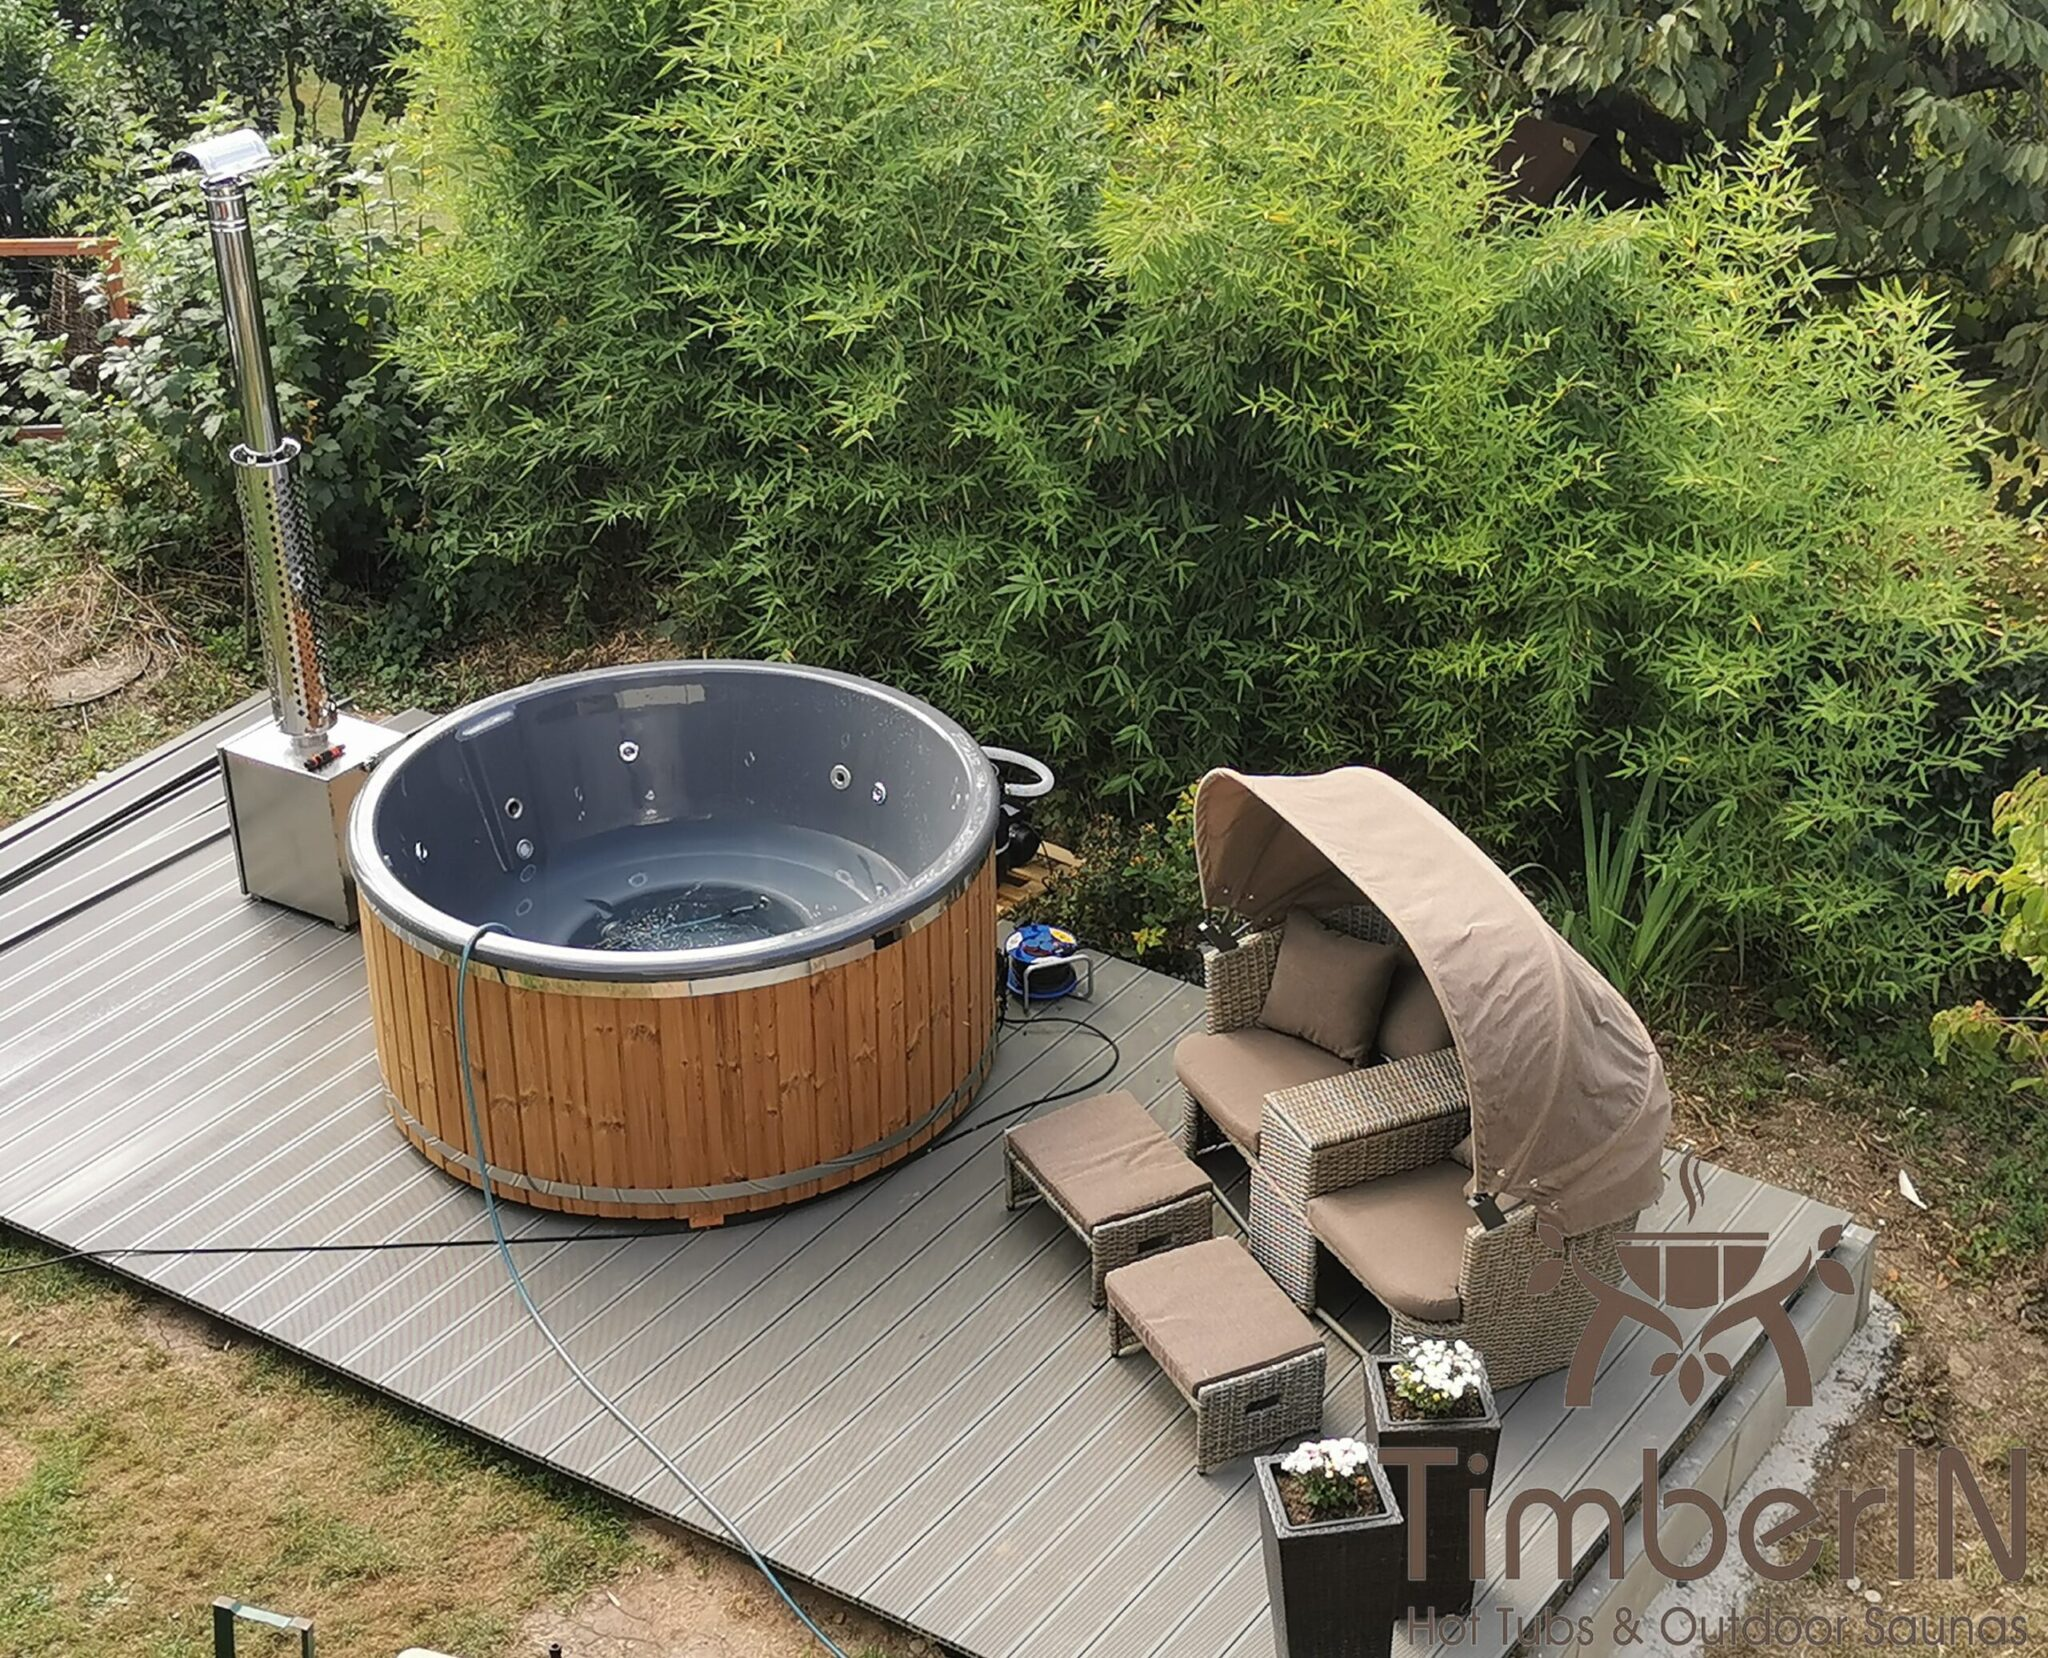 Badezuber Badefass Hot Tube mit Whirlpool Holzofen TimberIN Rojal Andrea Wehr Deutschland 3 scaled